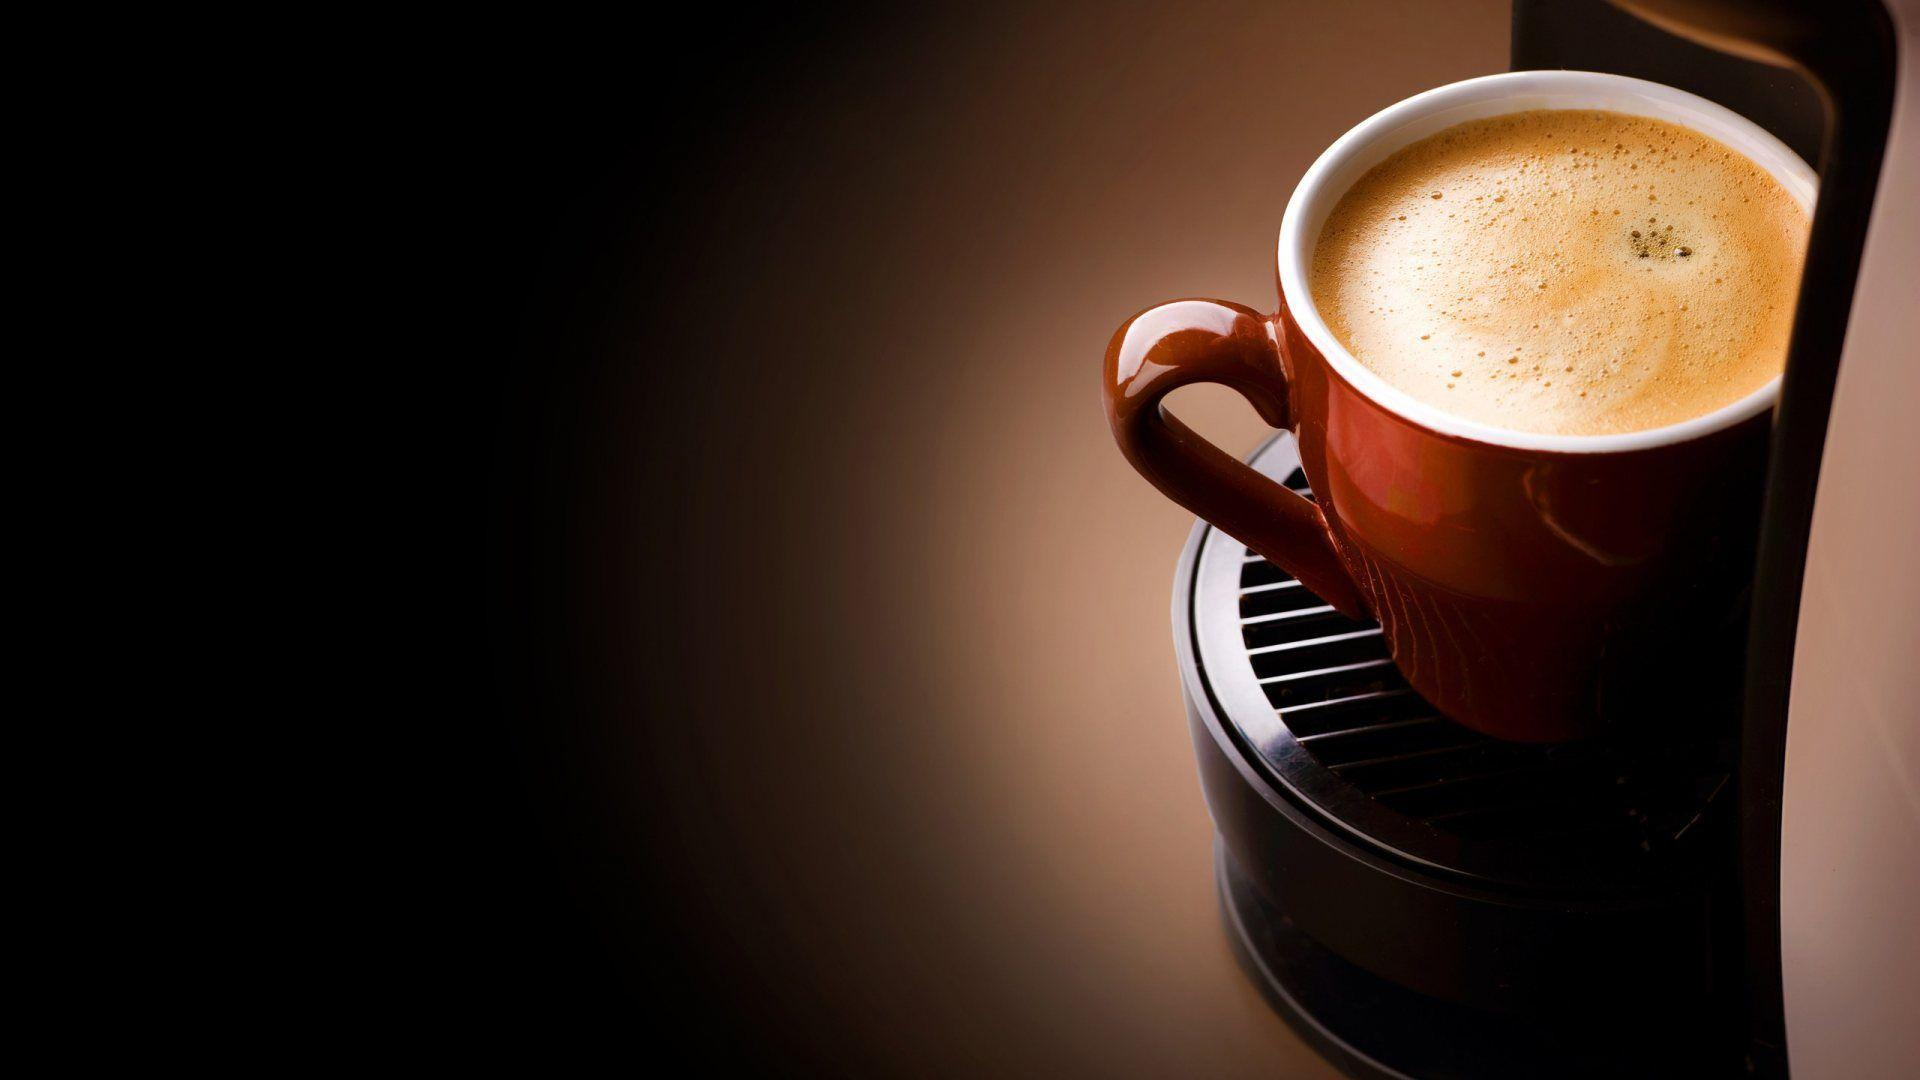 coffee cup picture 4k